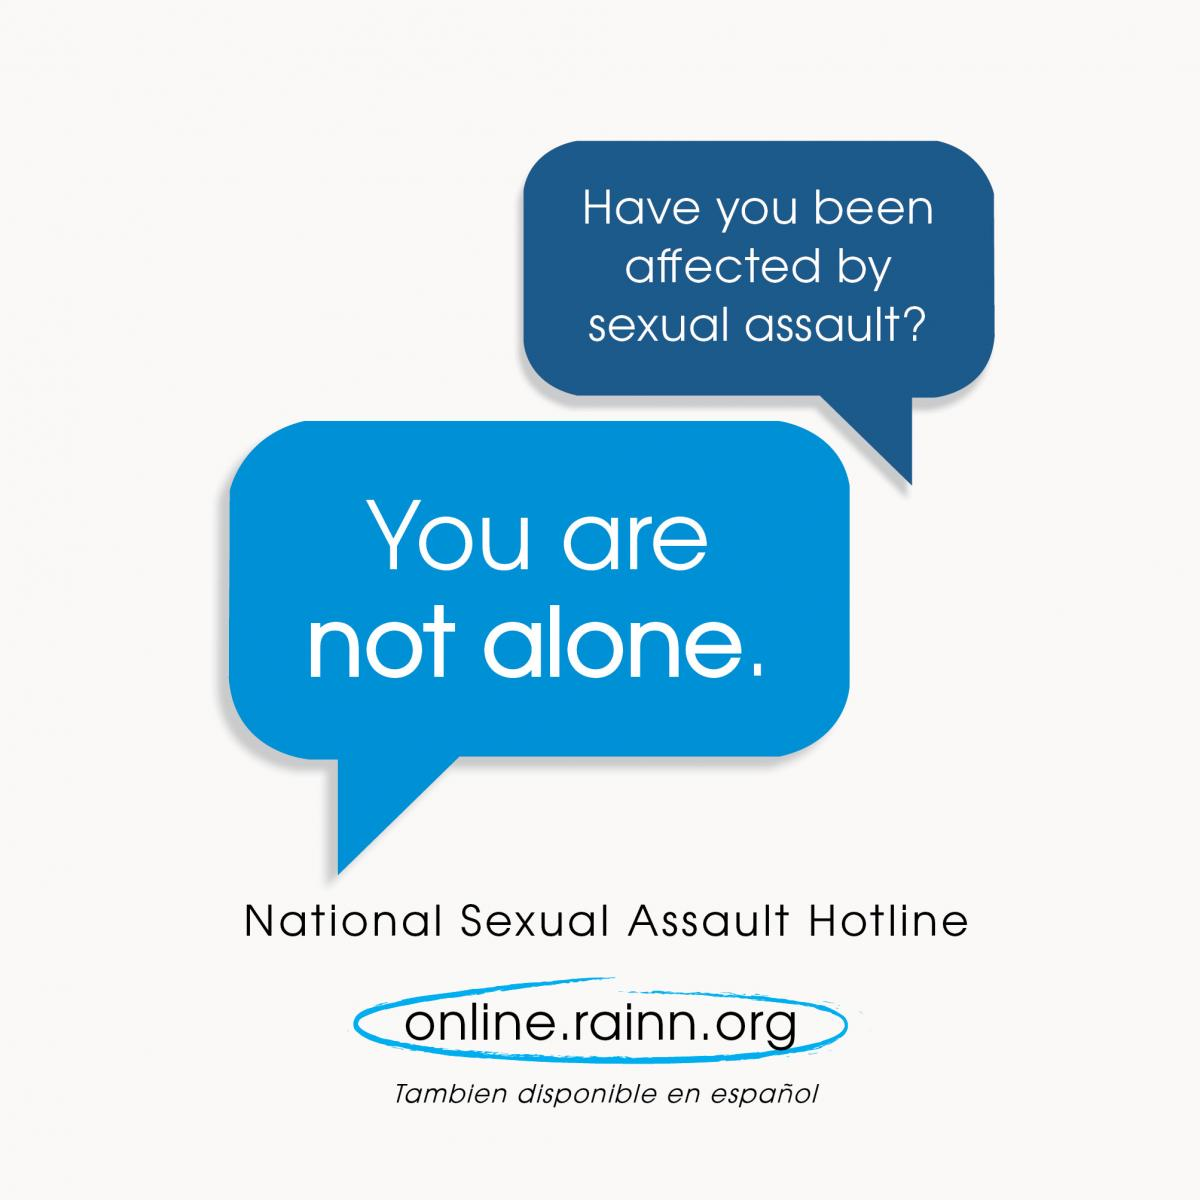 Downloadable graphic stating: Have you been affected by sexual assault? You are not alone